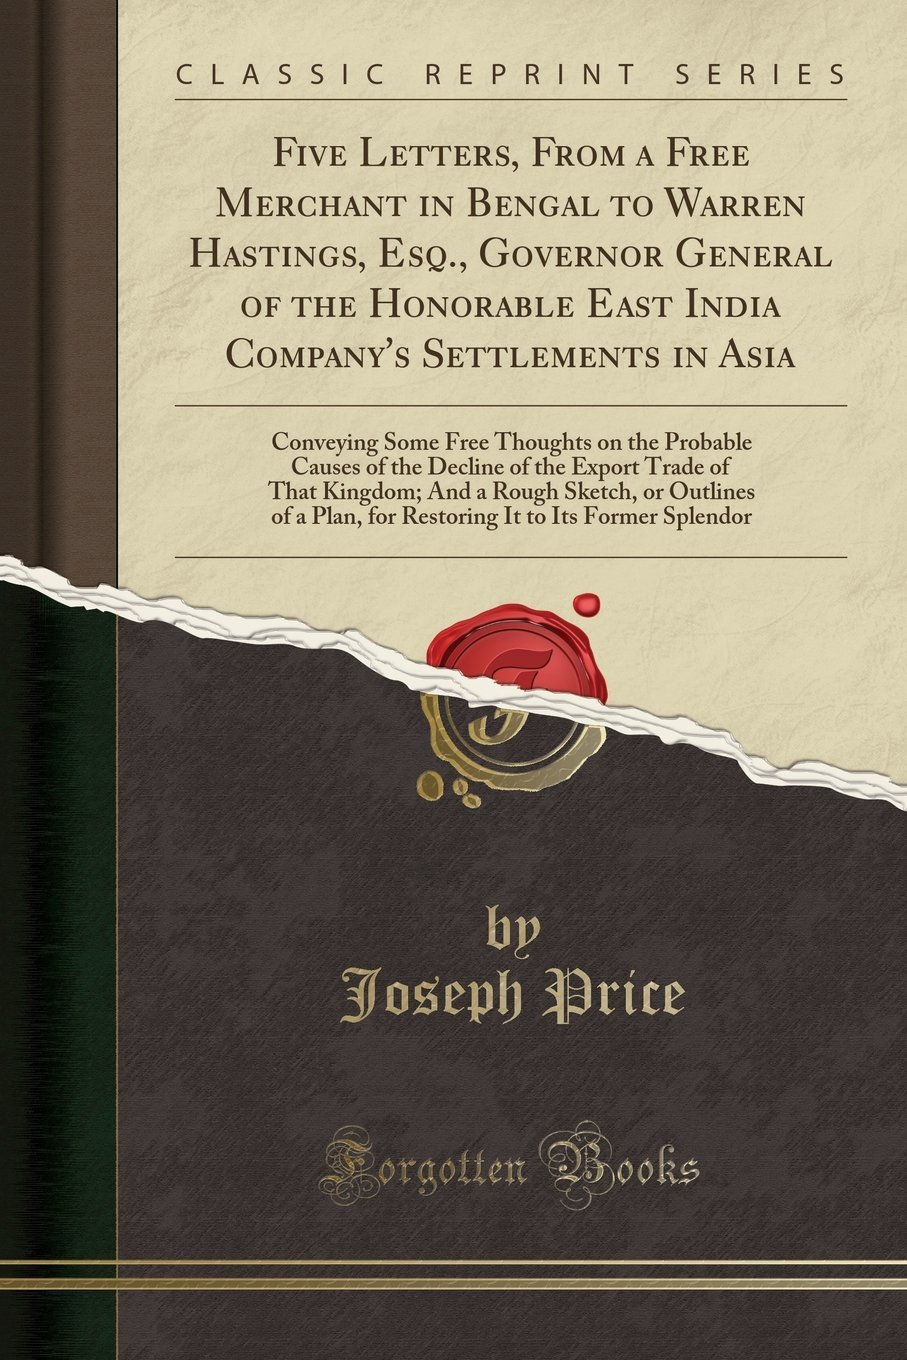 Five Letters, From a Free Merchant in Bengal to Warren Hastings, Esq., Governor General of the Honorable East India Company's Settlements in Asia: ... of the Export Trade of That Kingdom; And pdf epub